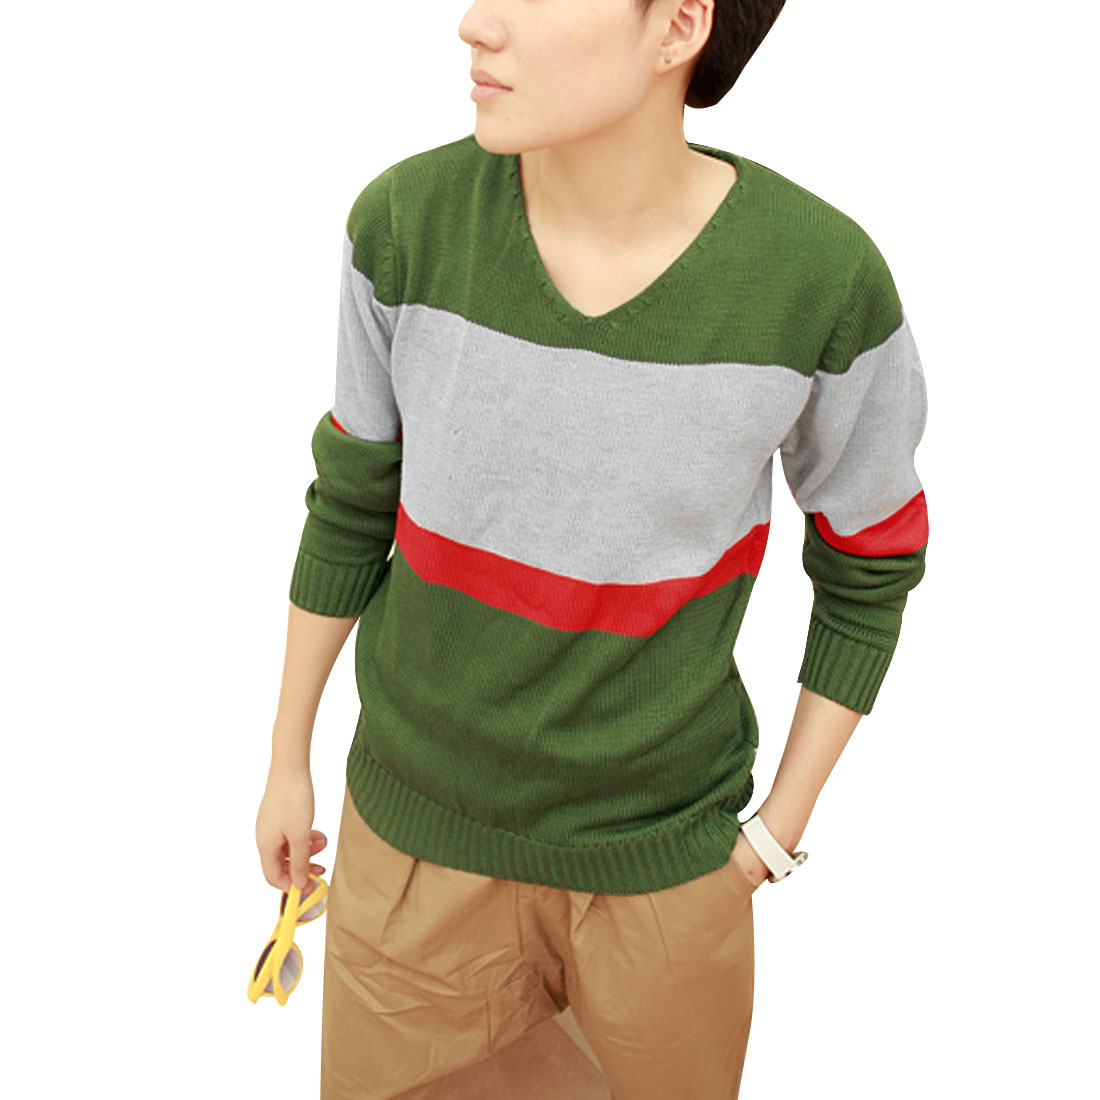 Men Olive Green Stylish Long Sleeve Pullover Design V-neck Casual Sweater S